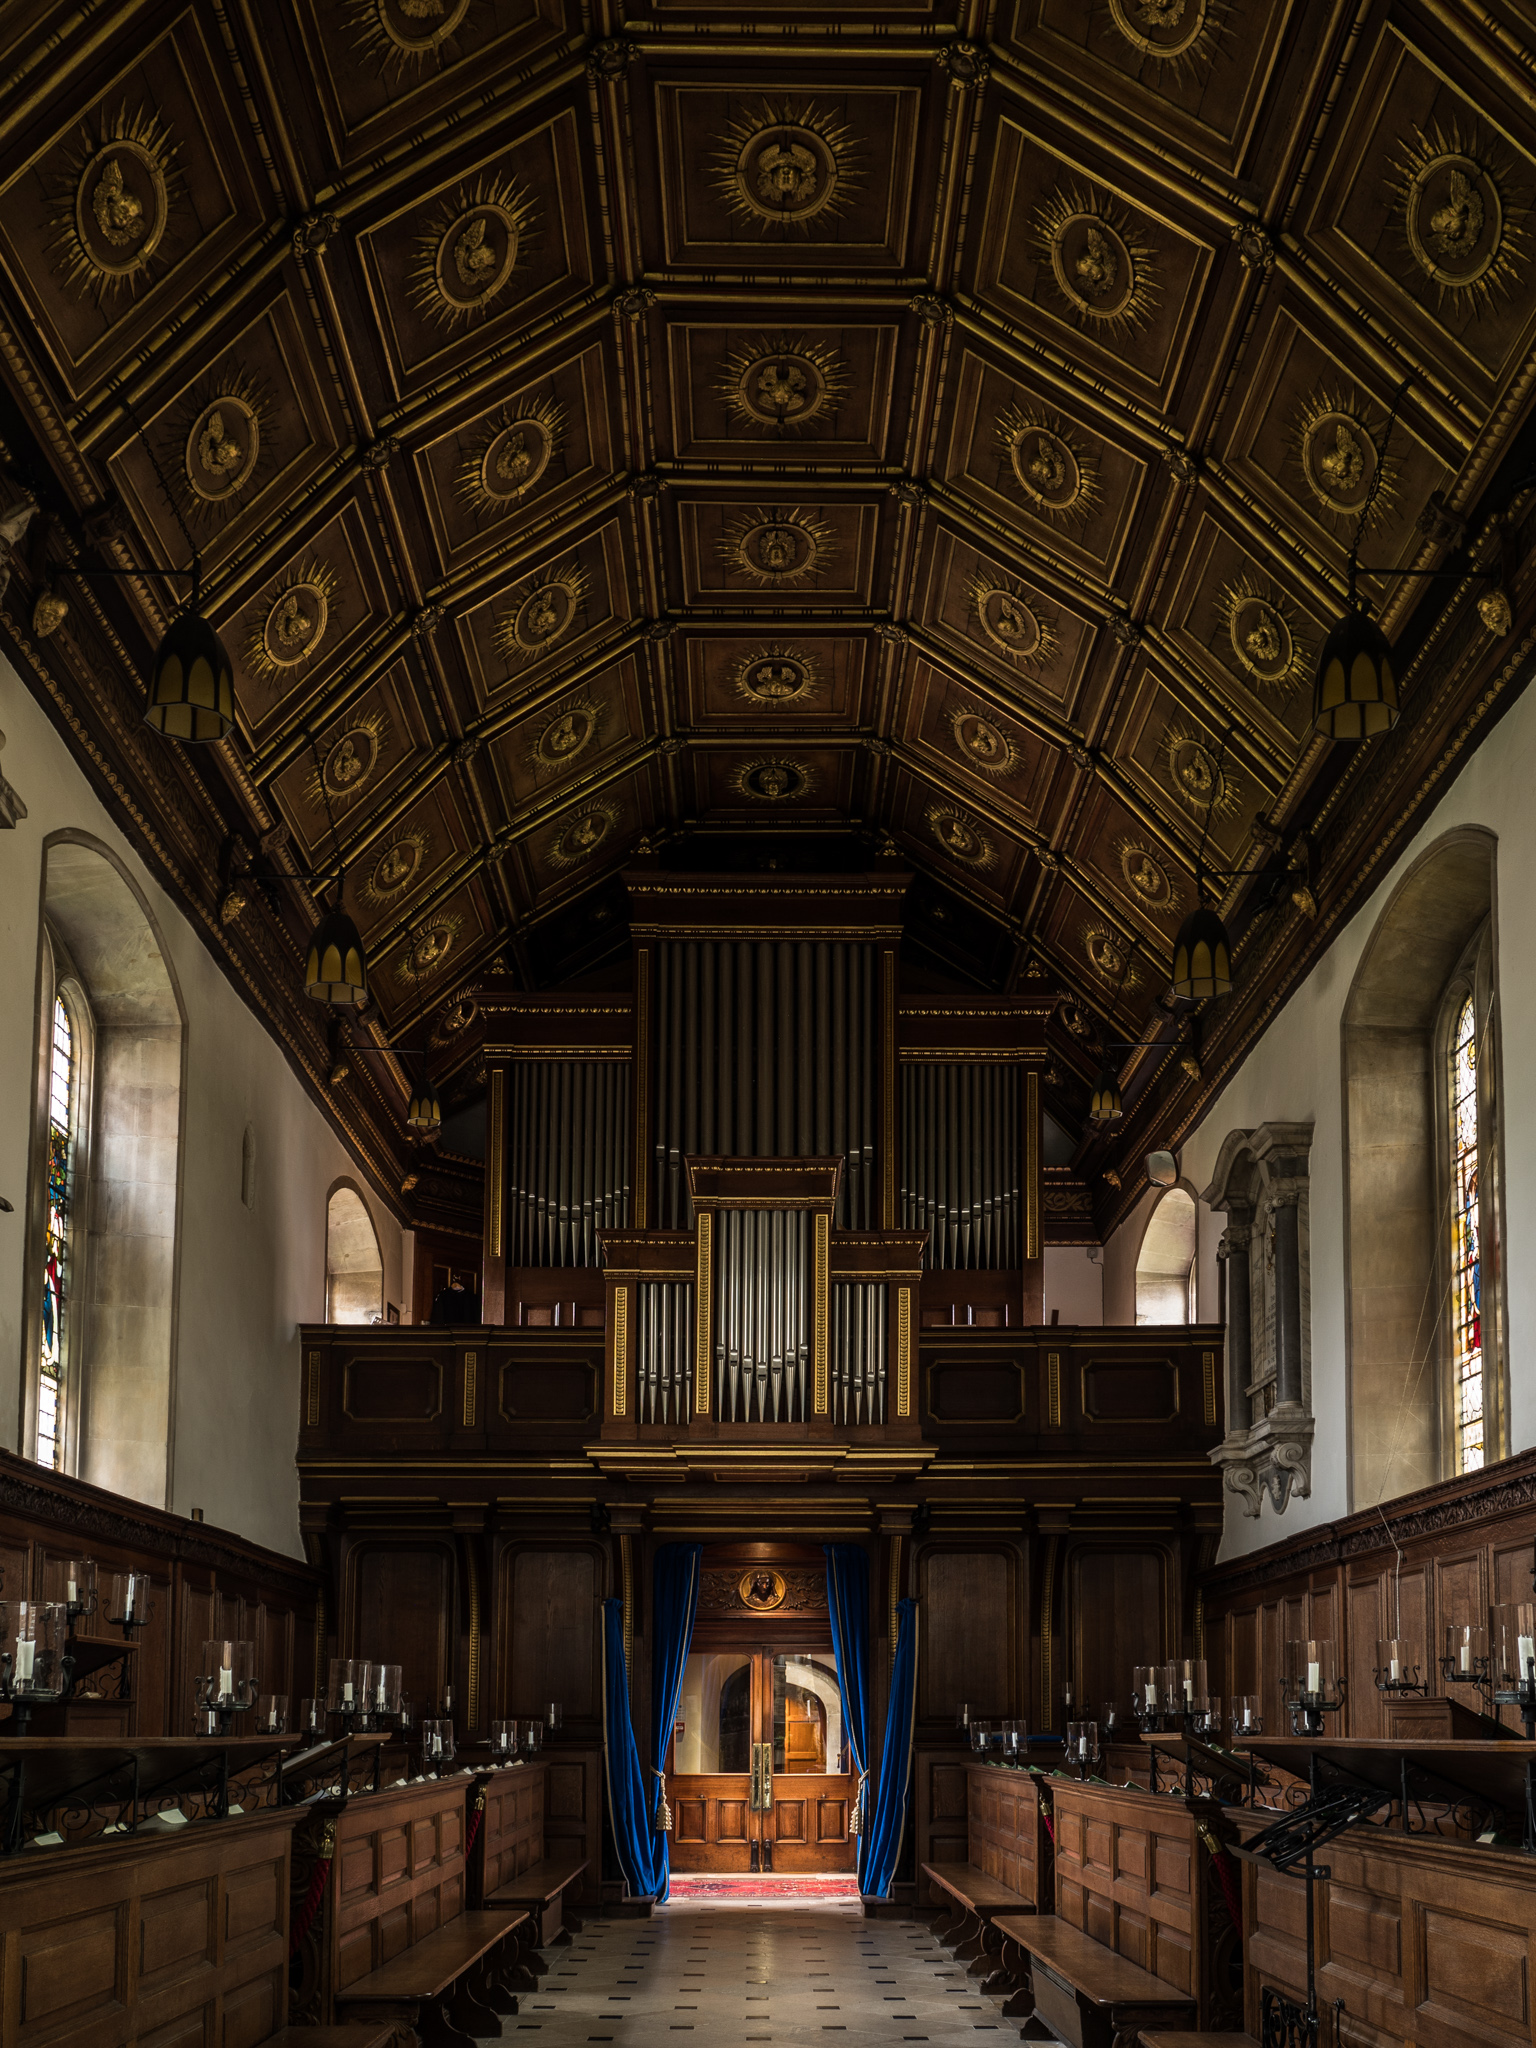 The interior of Gonville and Caius College Chapel